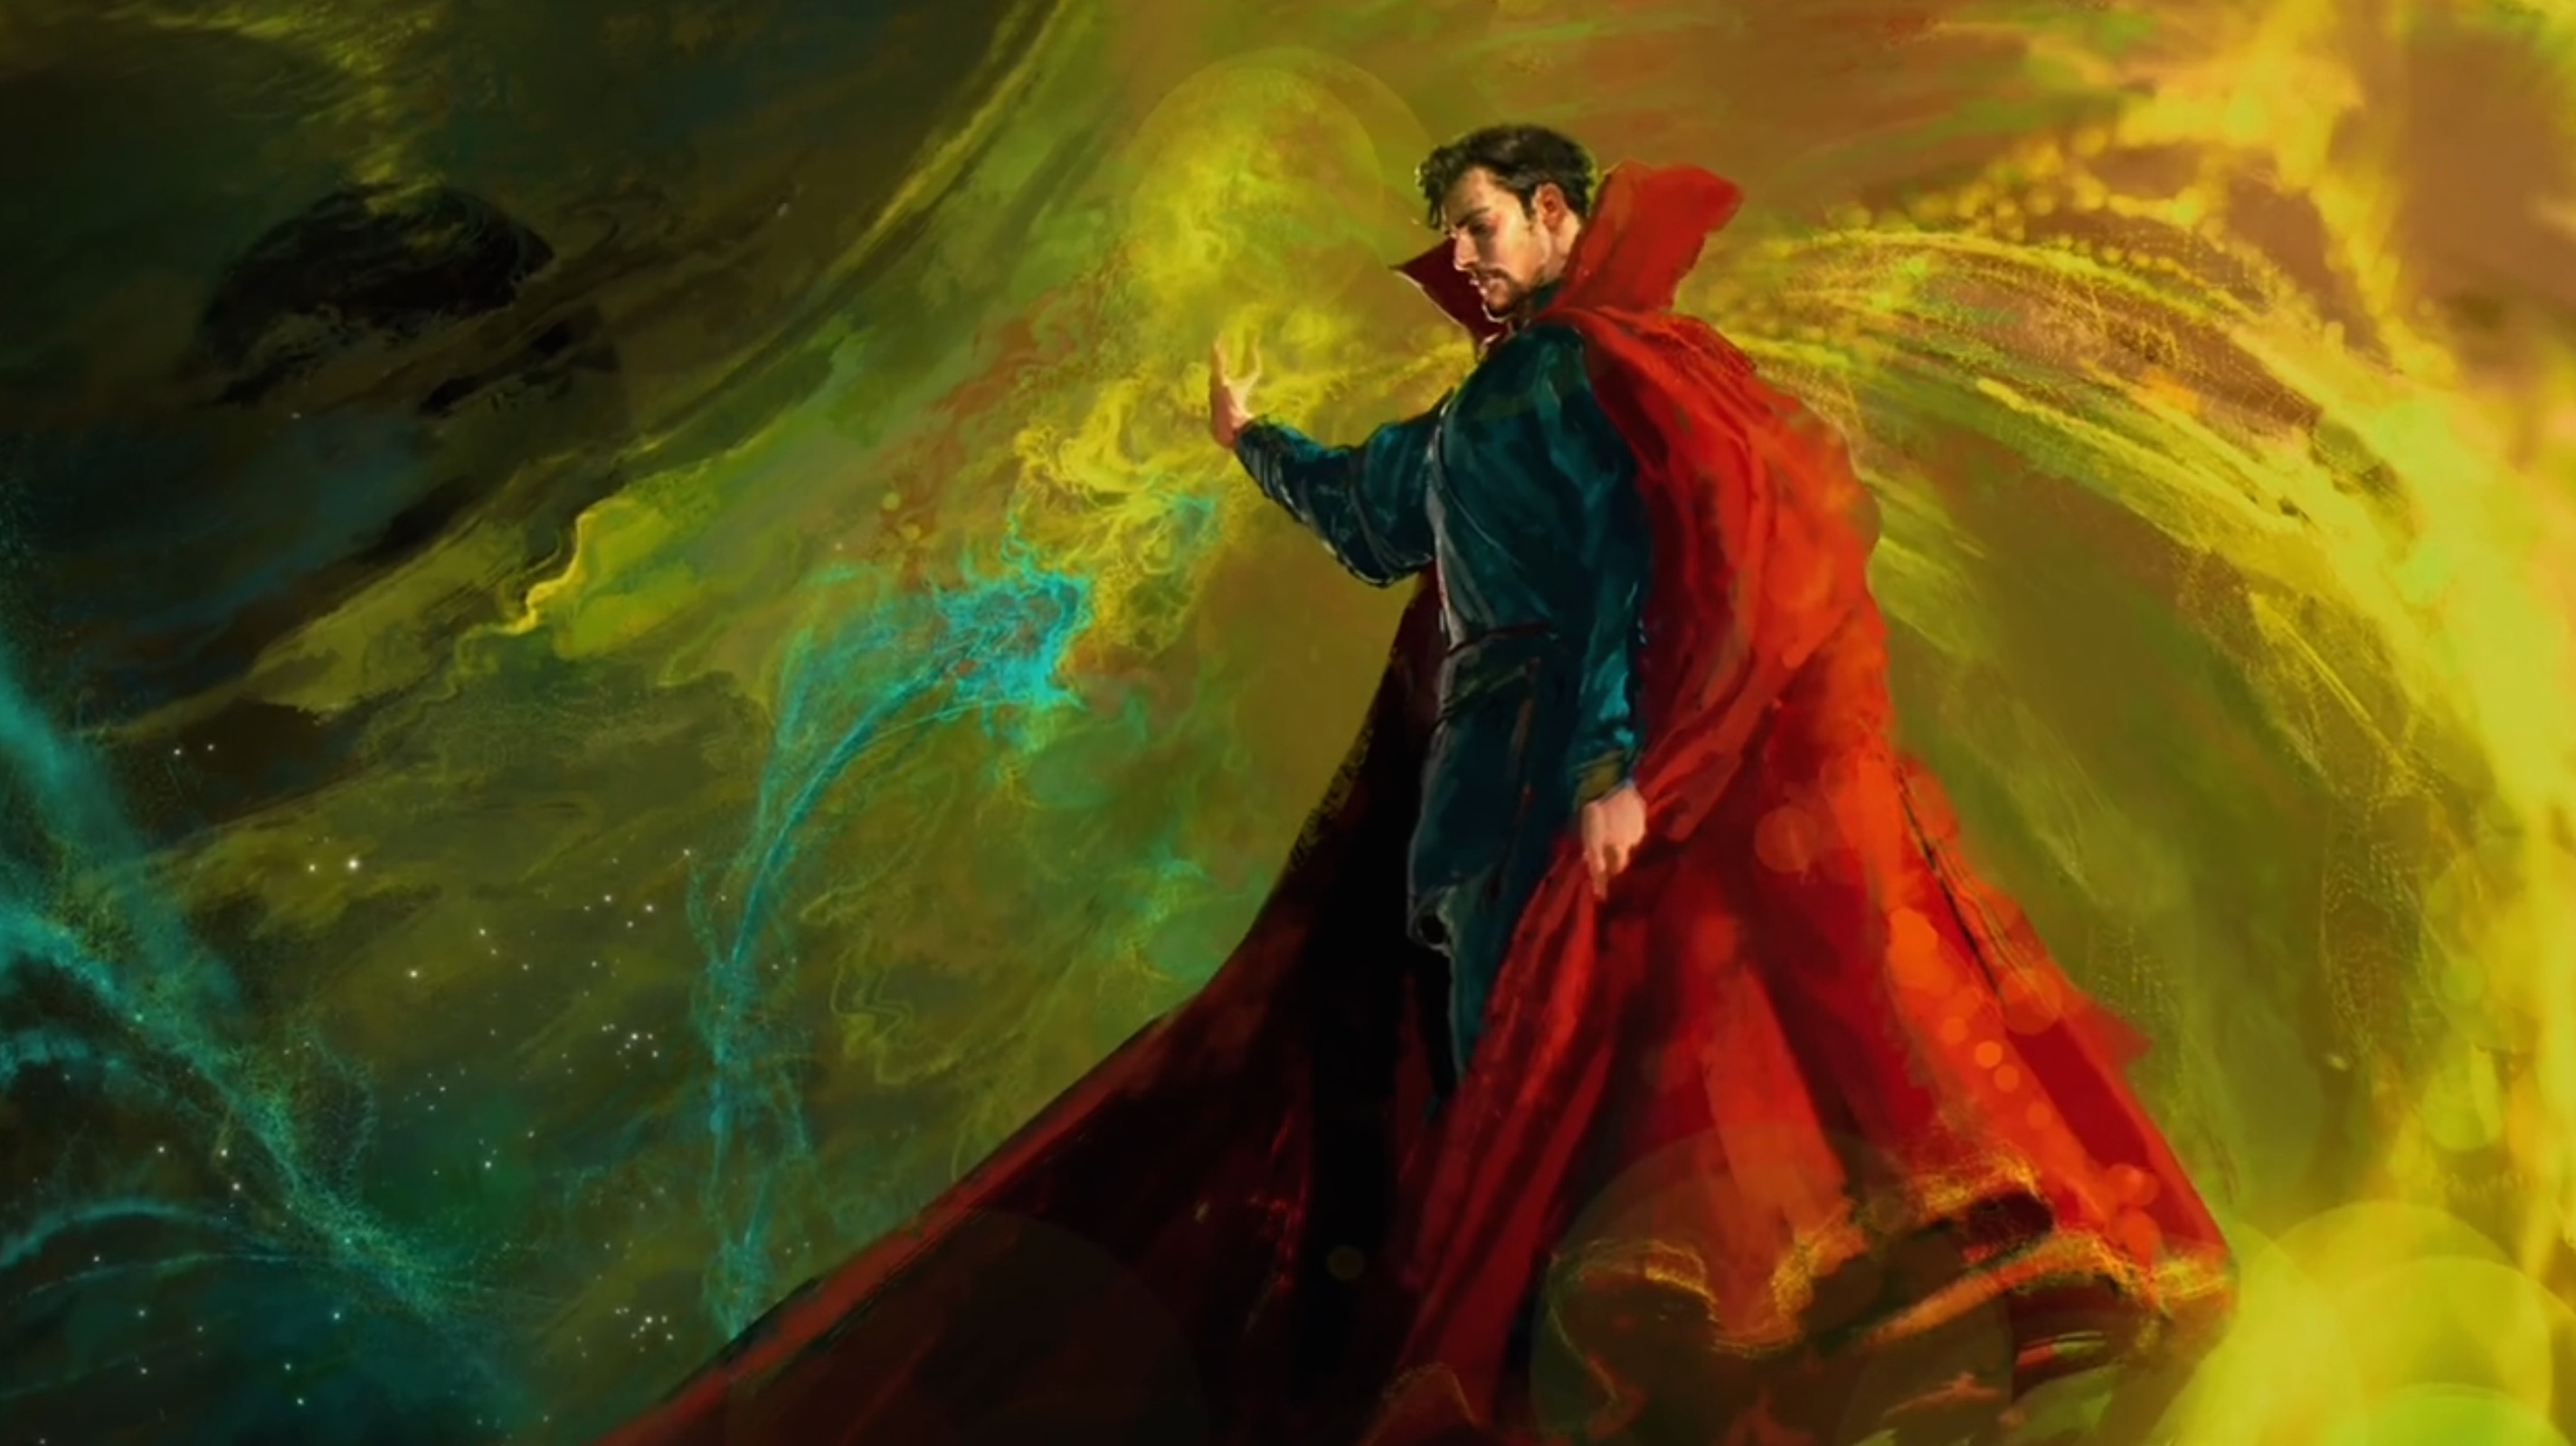 New Plot Synopses for Doctor Strange and GOTG Vol. 2